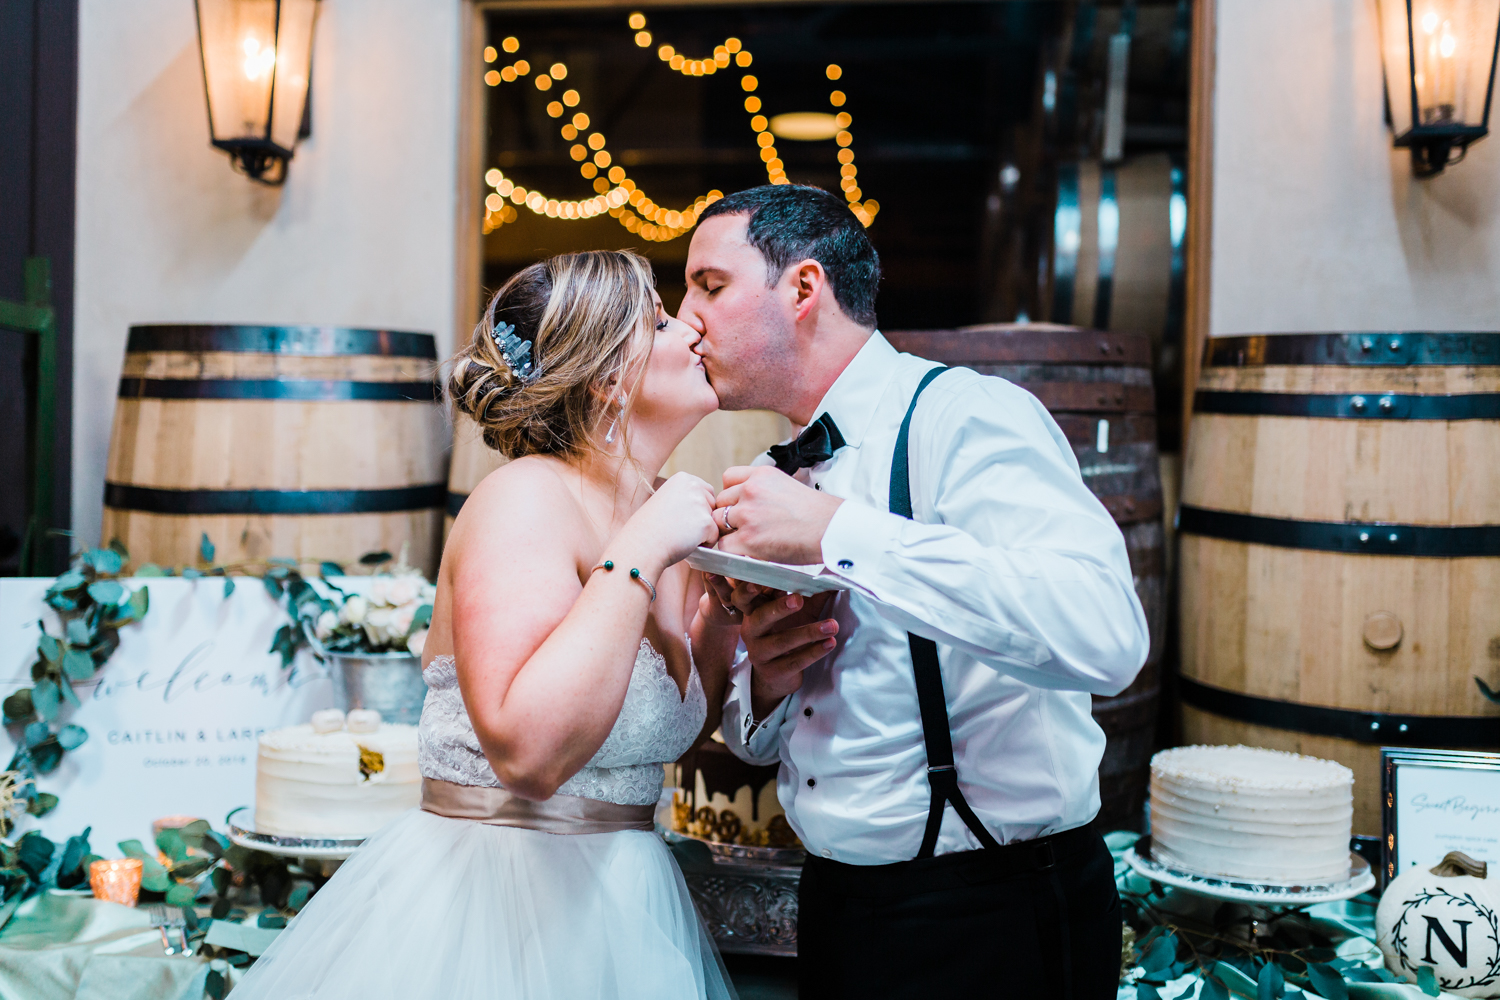 Bride and groom kiss after cutting their wedding cake - candid wedding photographers in Maryland